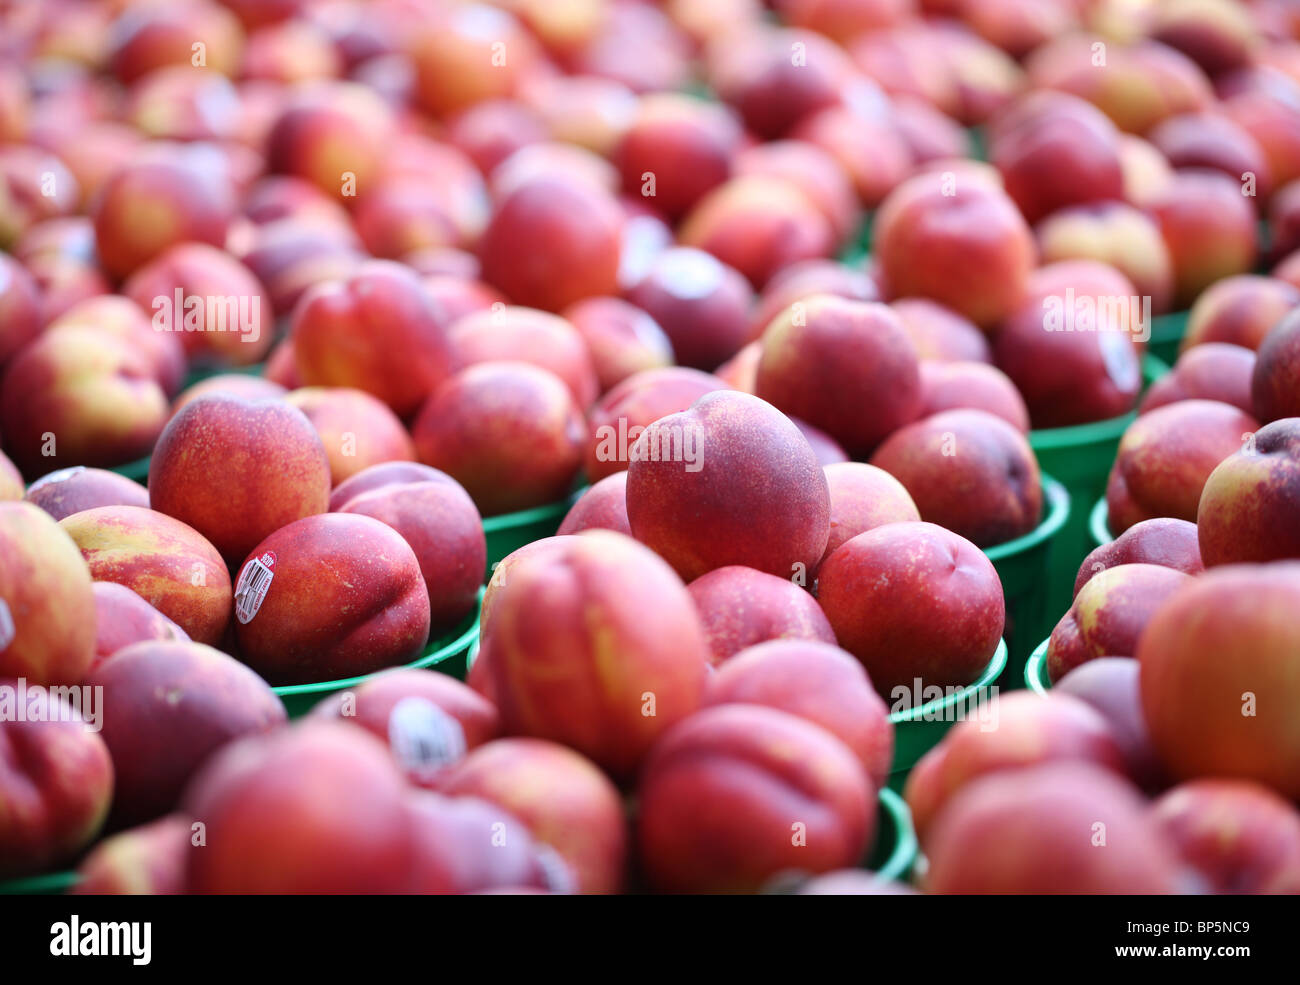 A collection of trays with fresh farmer's market nectarines - Stock Image